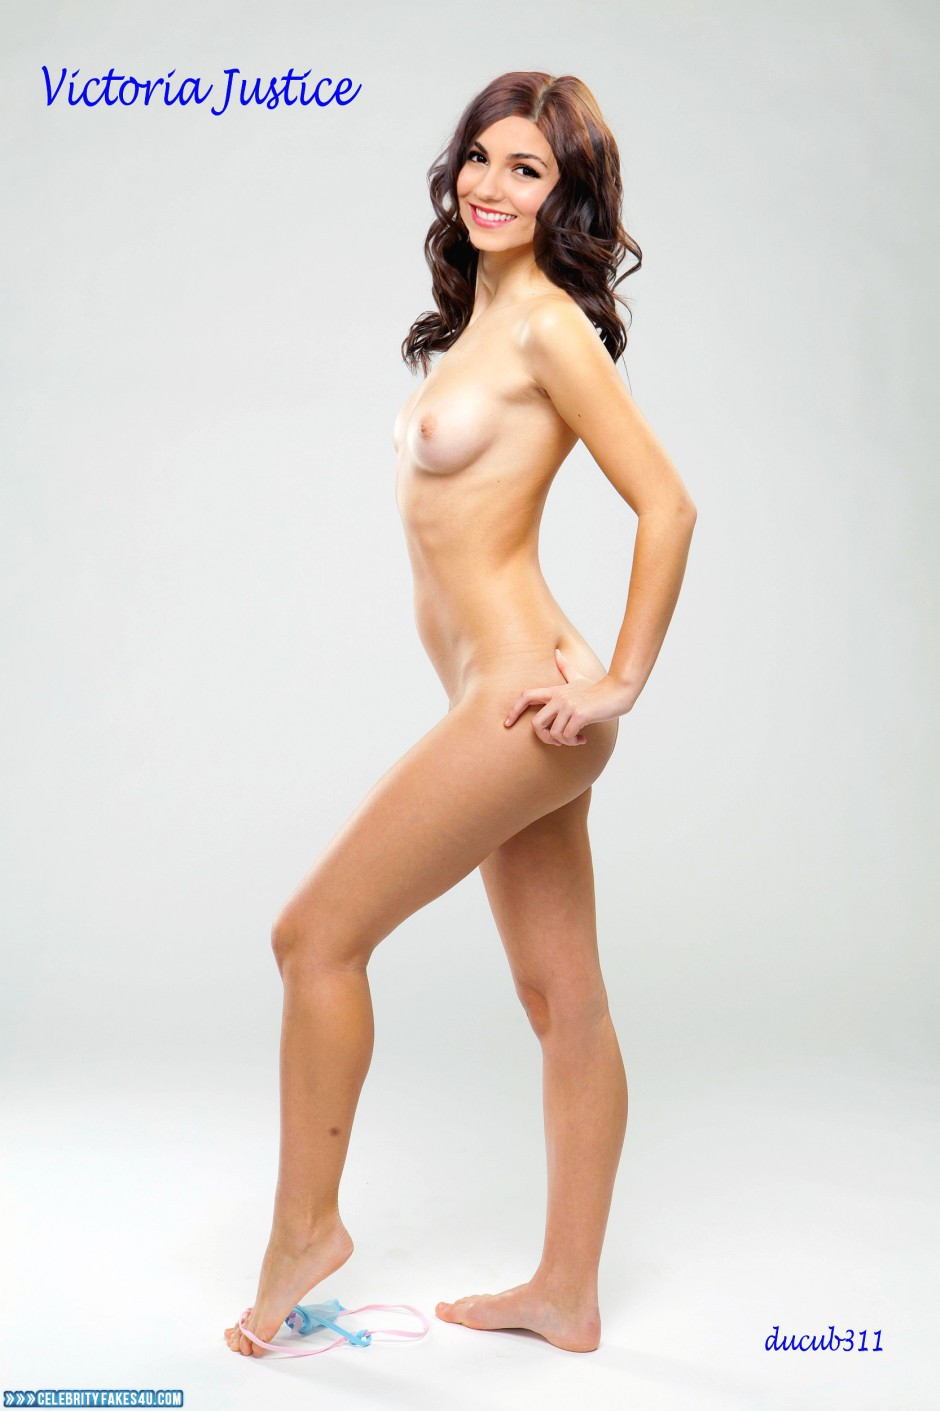 Victoria Justice Fake, Legs, Naked Body, Nude, Panties, Tits, Undressing, Porn